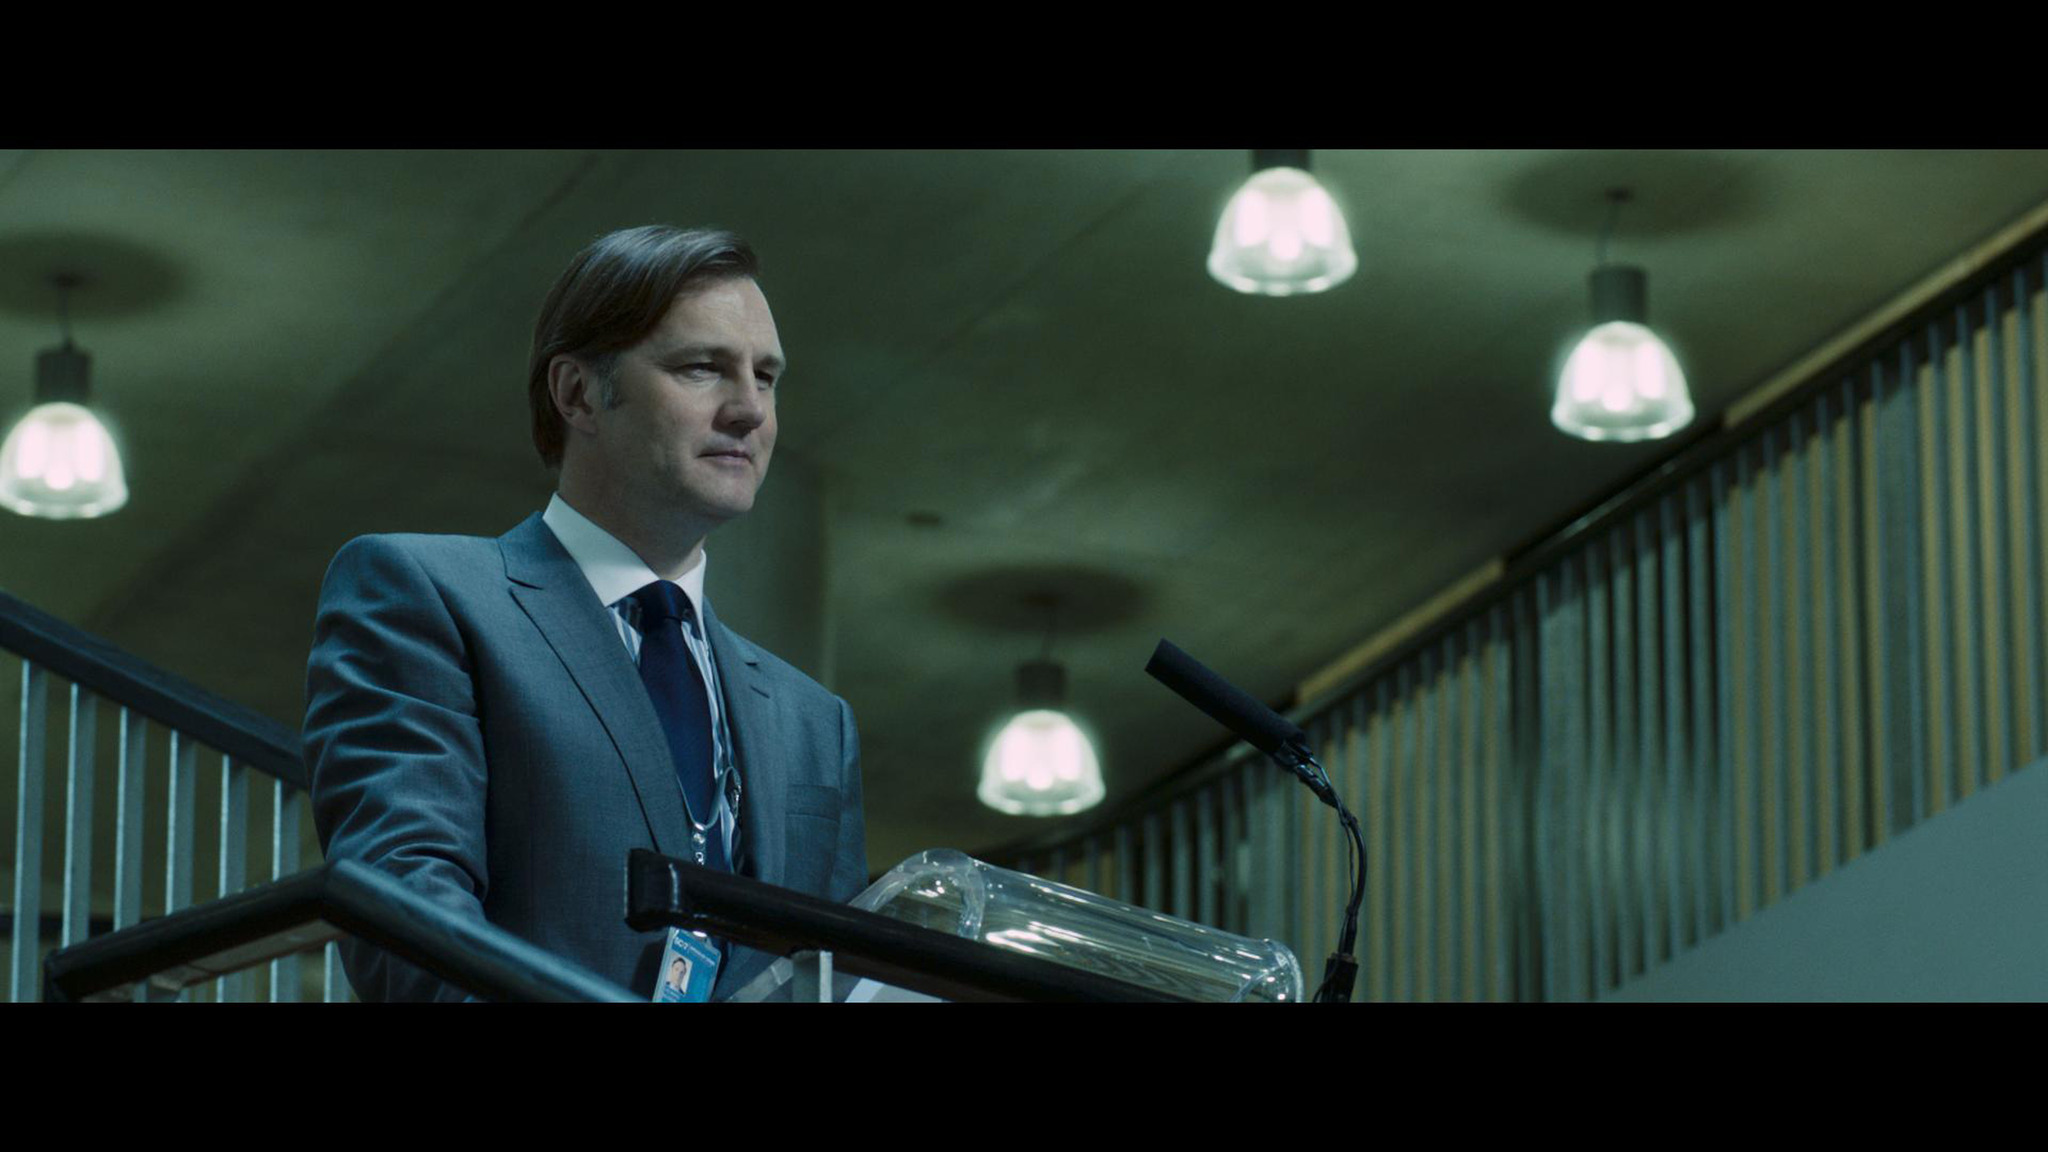 David Morrissey in Welcome to the Punch (2013)